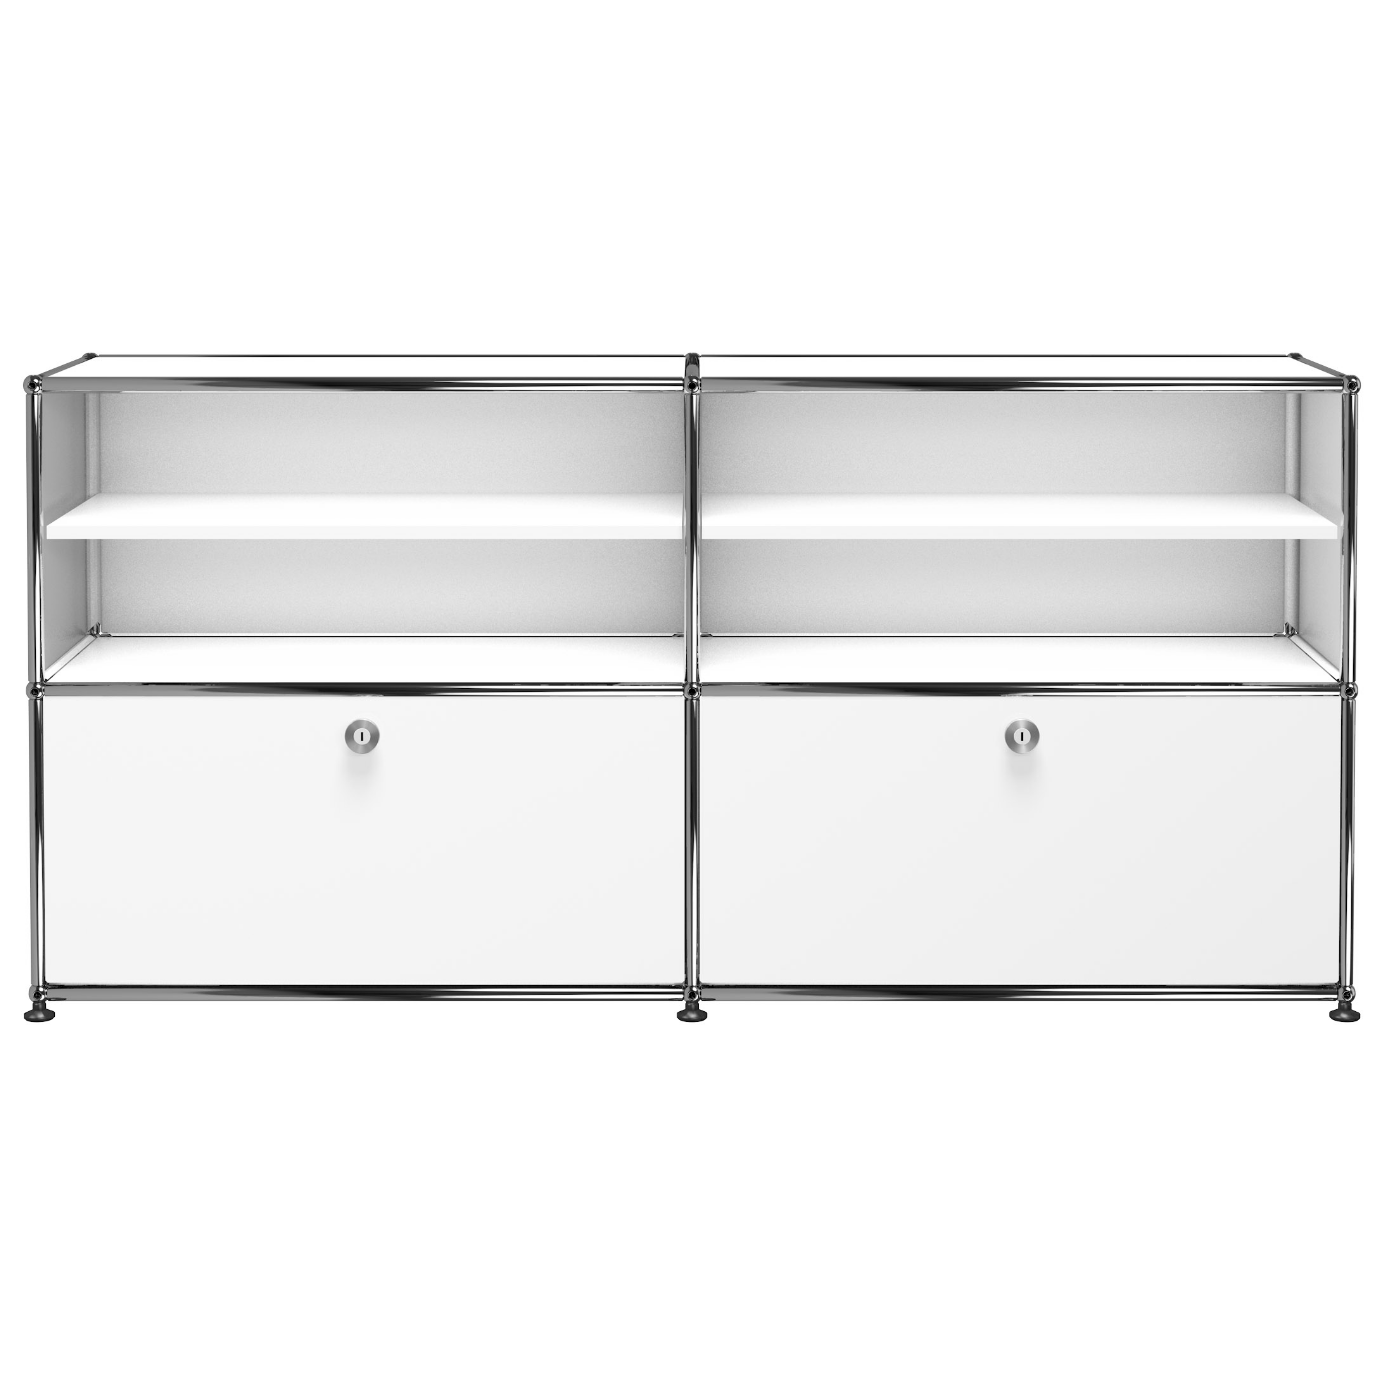 Lovely Usm Haller Credenza C2b Sarasota High End Furniture Florida Fl